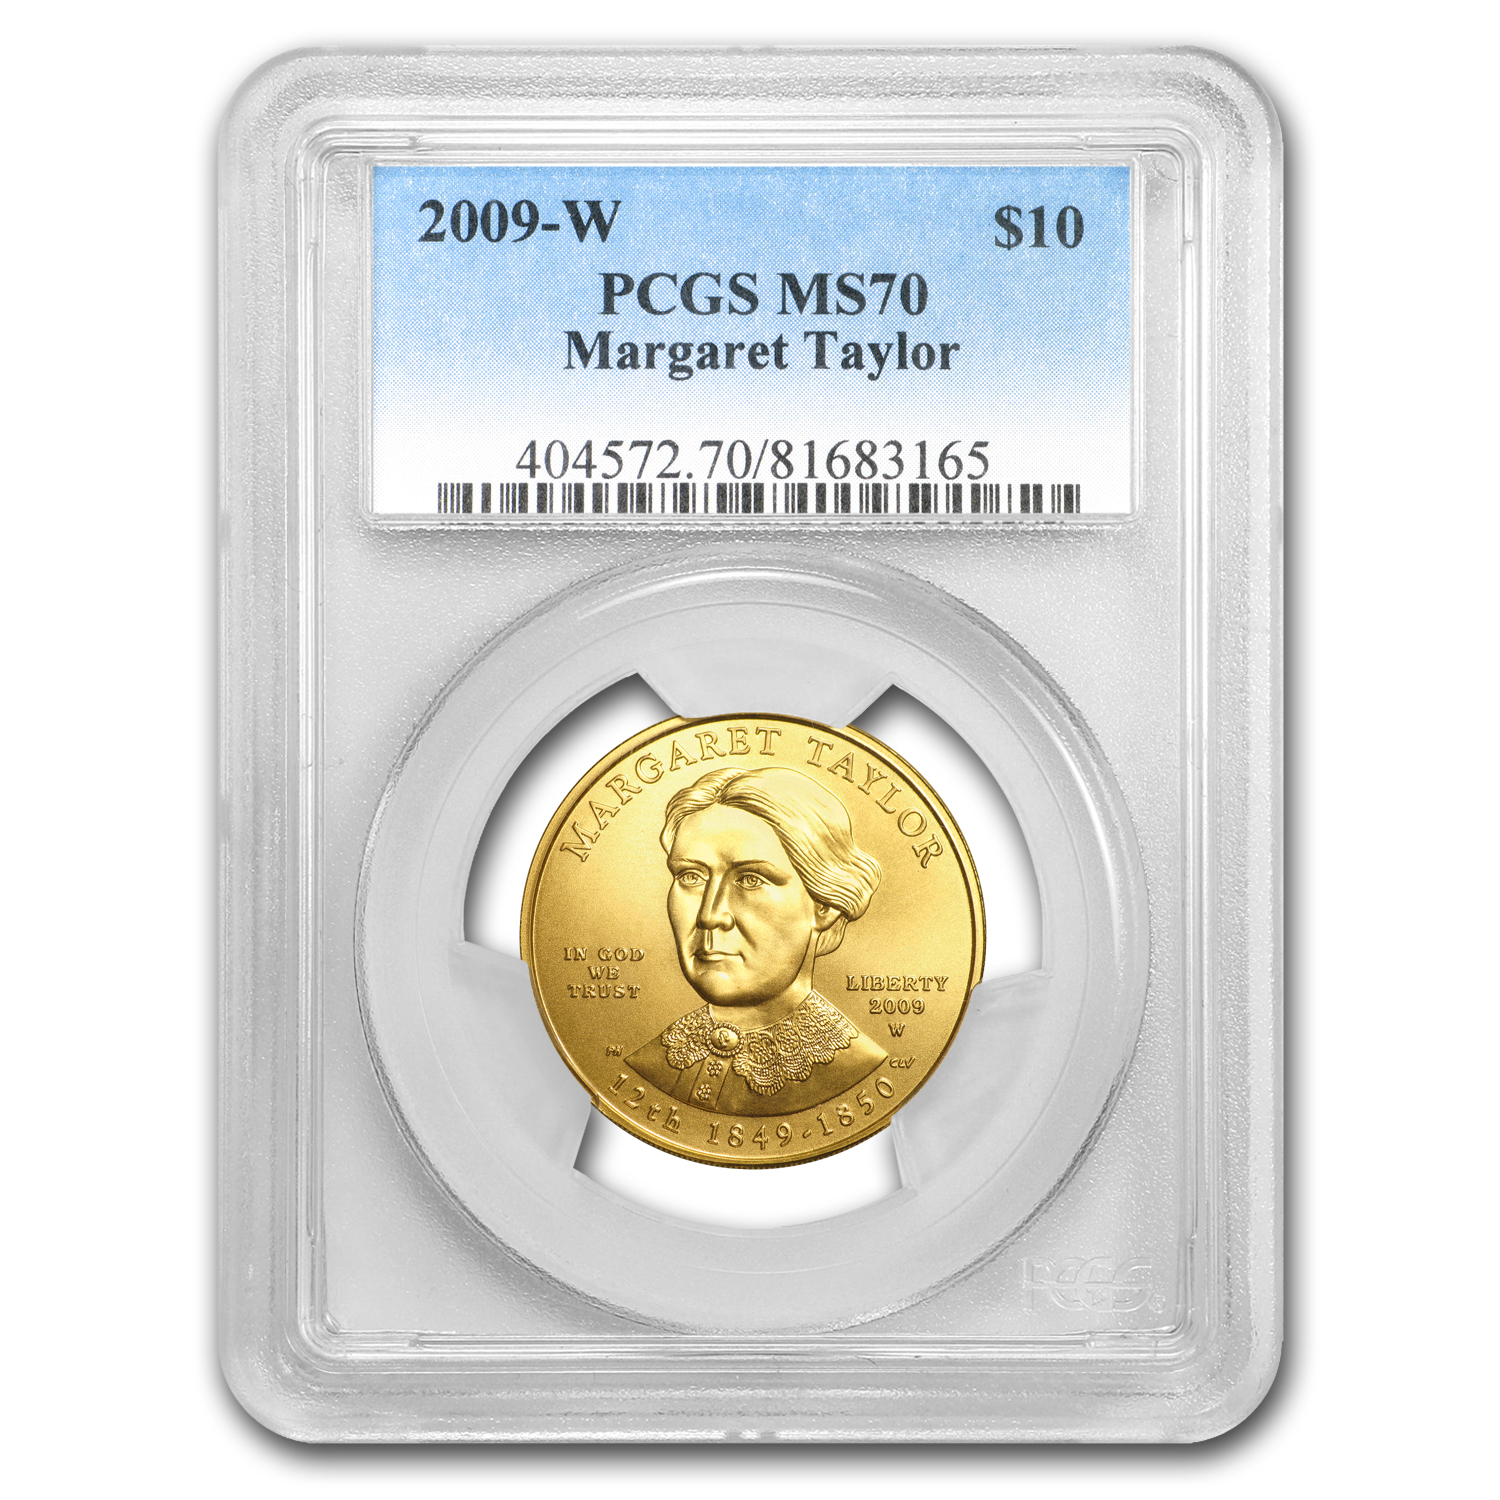 2009-W 1/2 oz Uncirculated Gold Margaret Taylor MS-70 PCGS